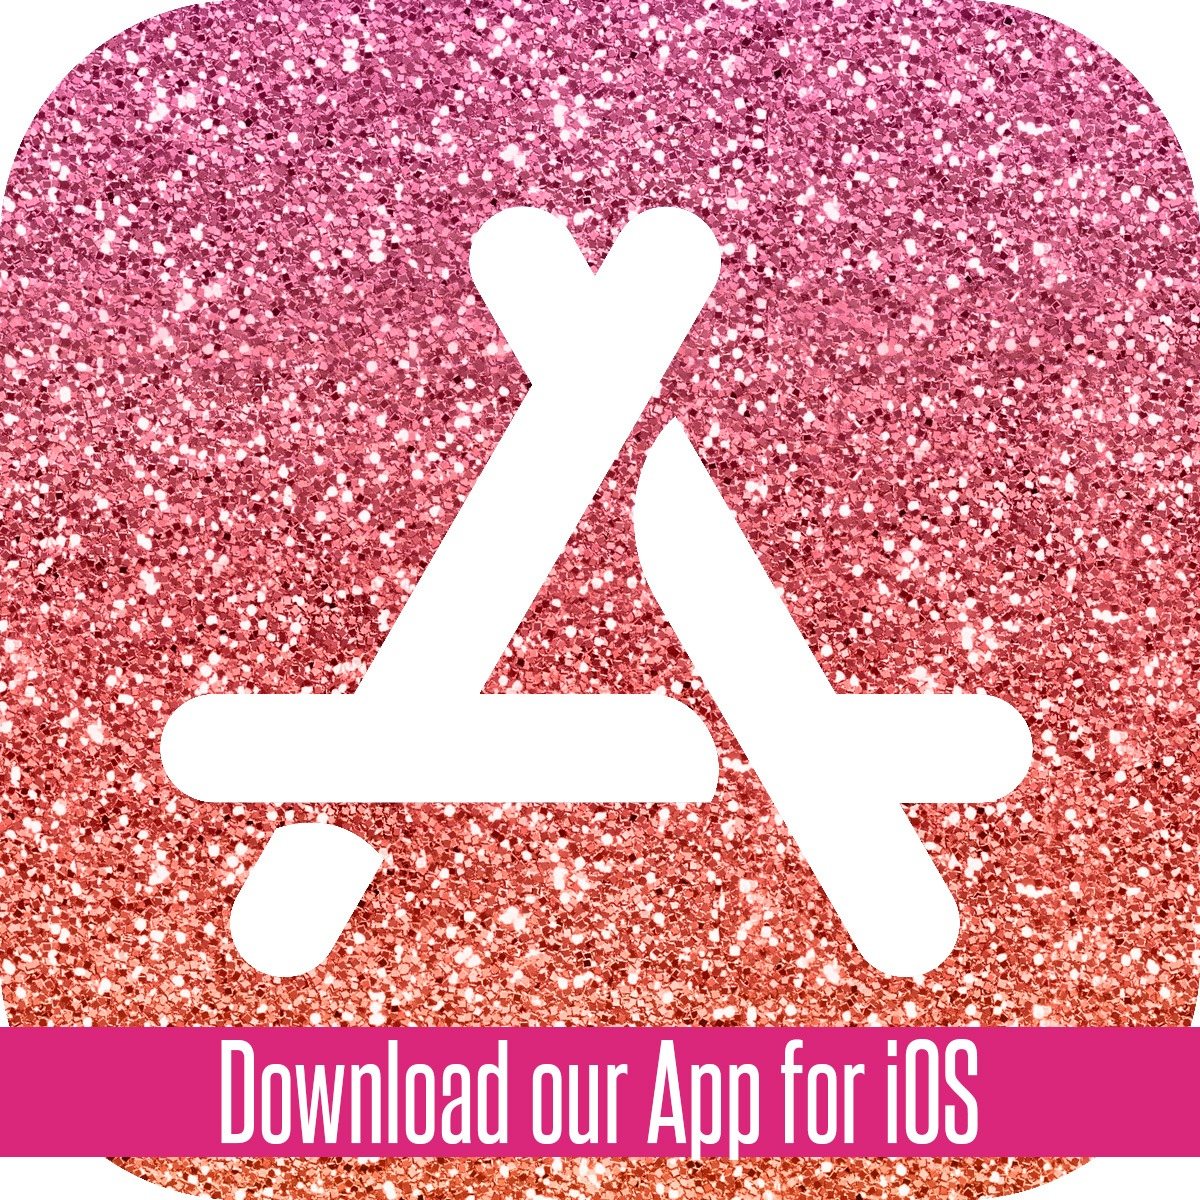 Download Our APP for iOS